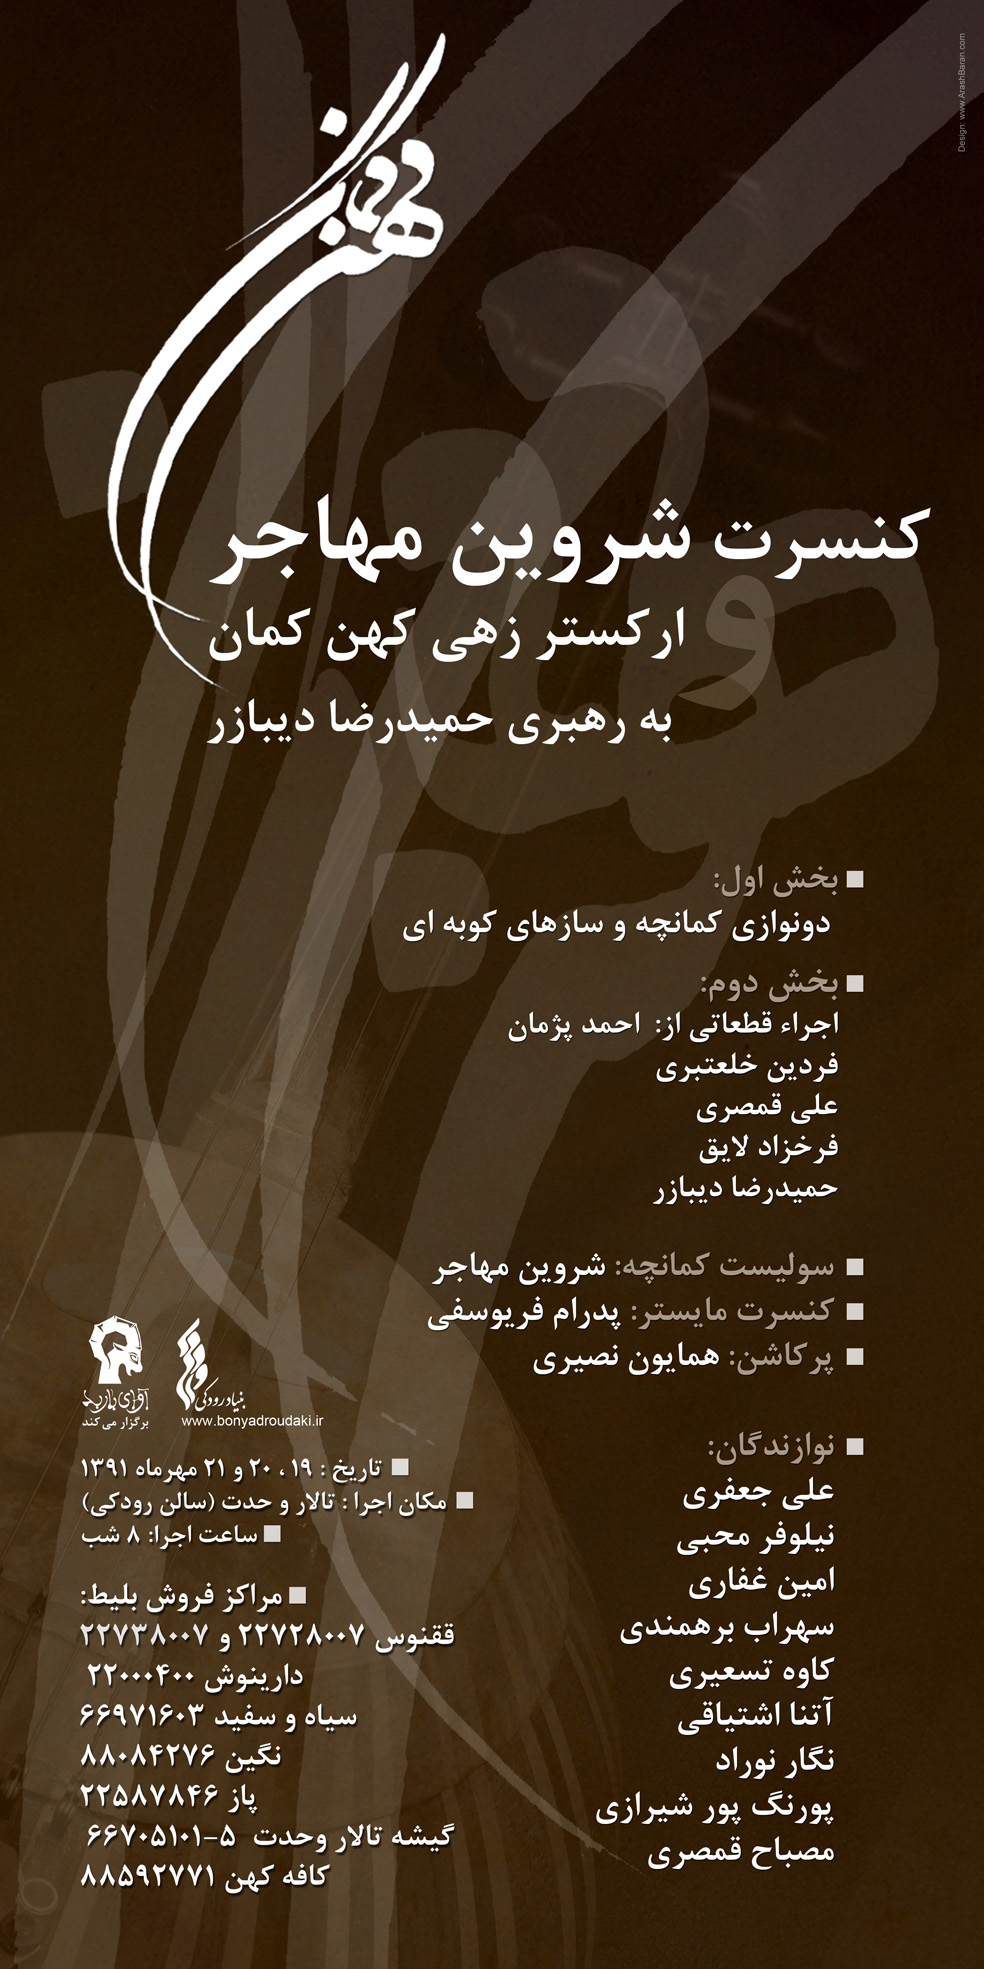 http://musiceiranian.ir/images/news-pic/2012/09/Poster-03-email.jpg